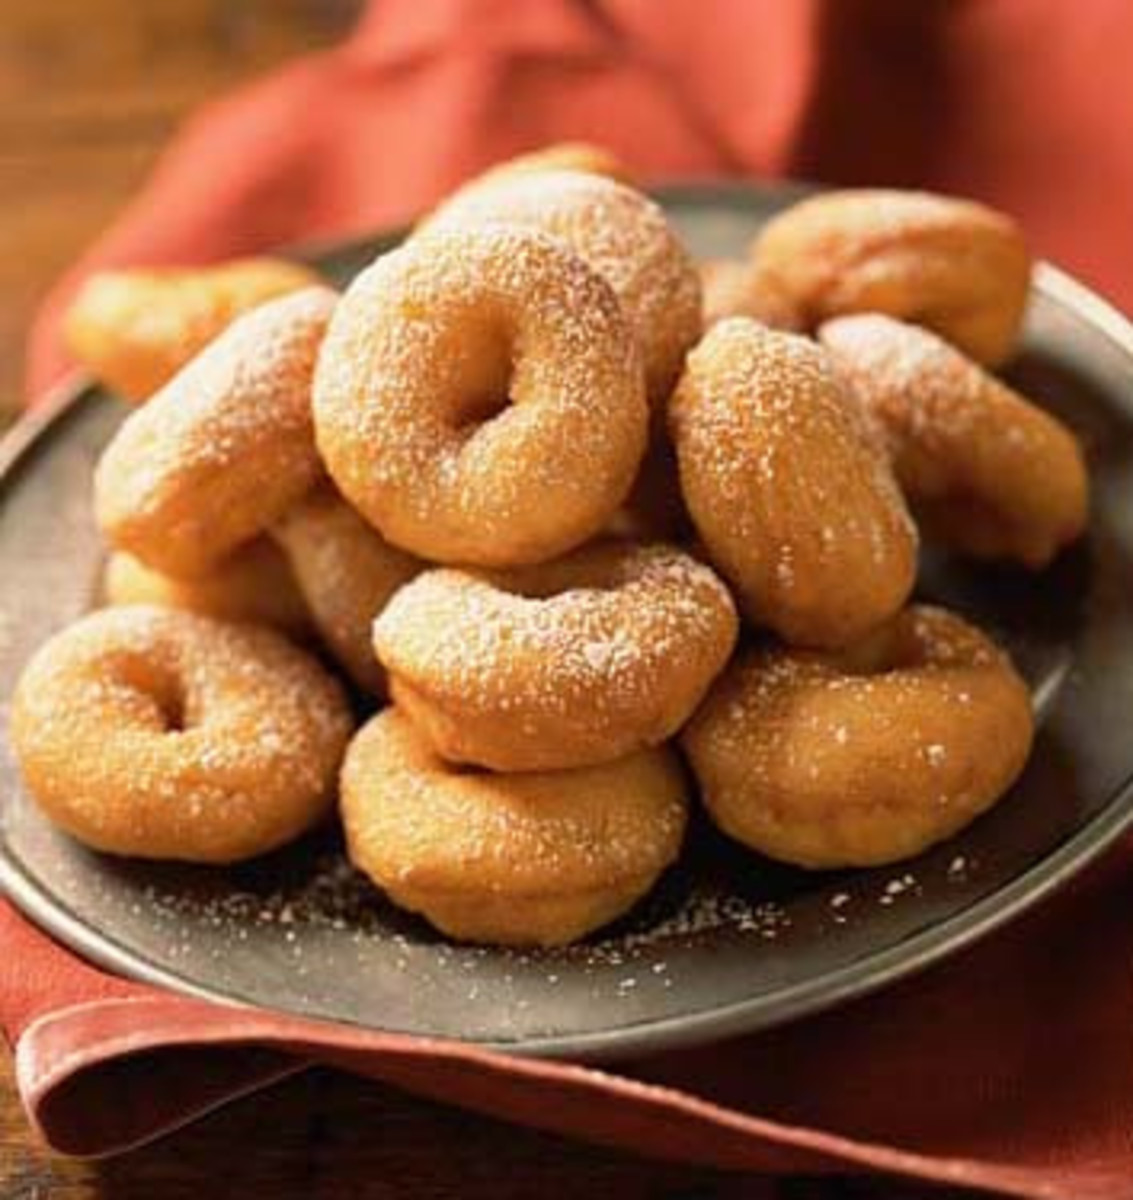 Delicious apple cider donuts